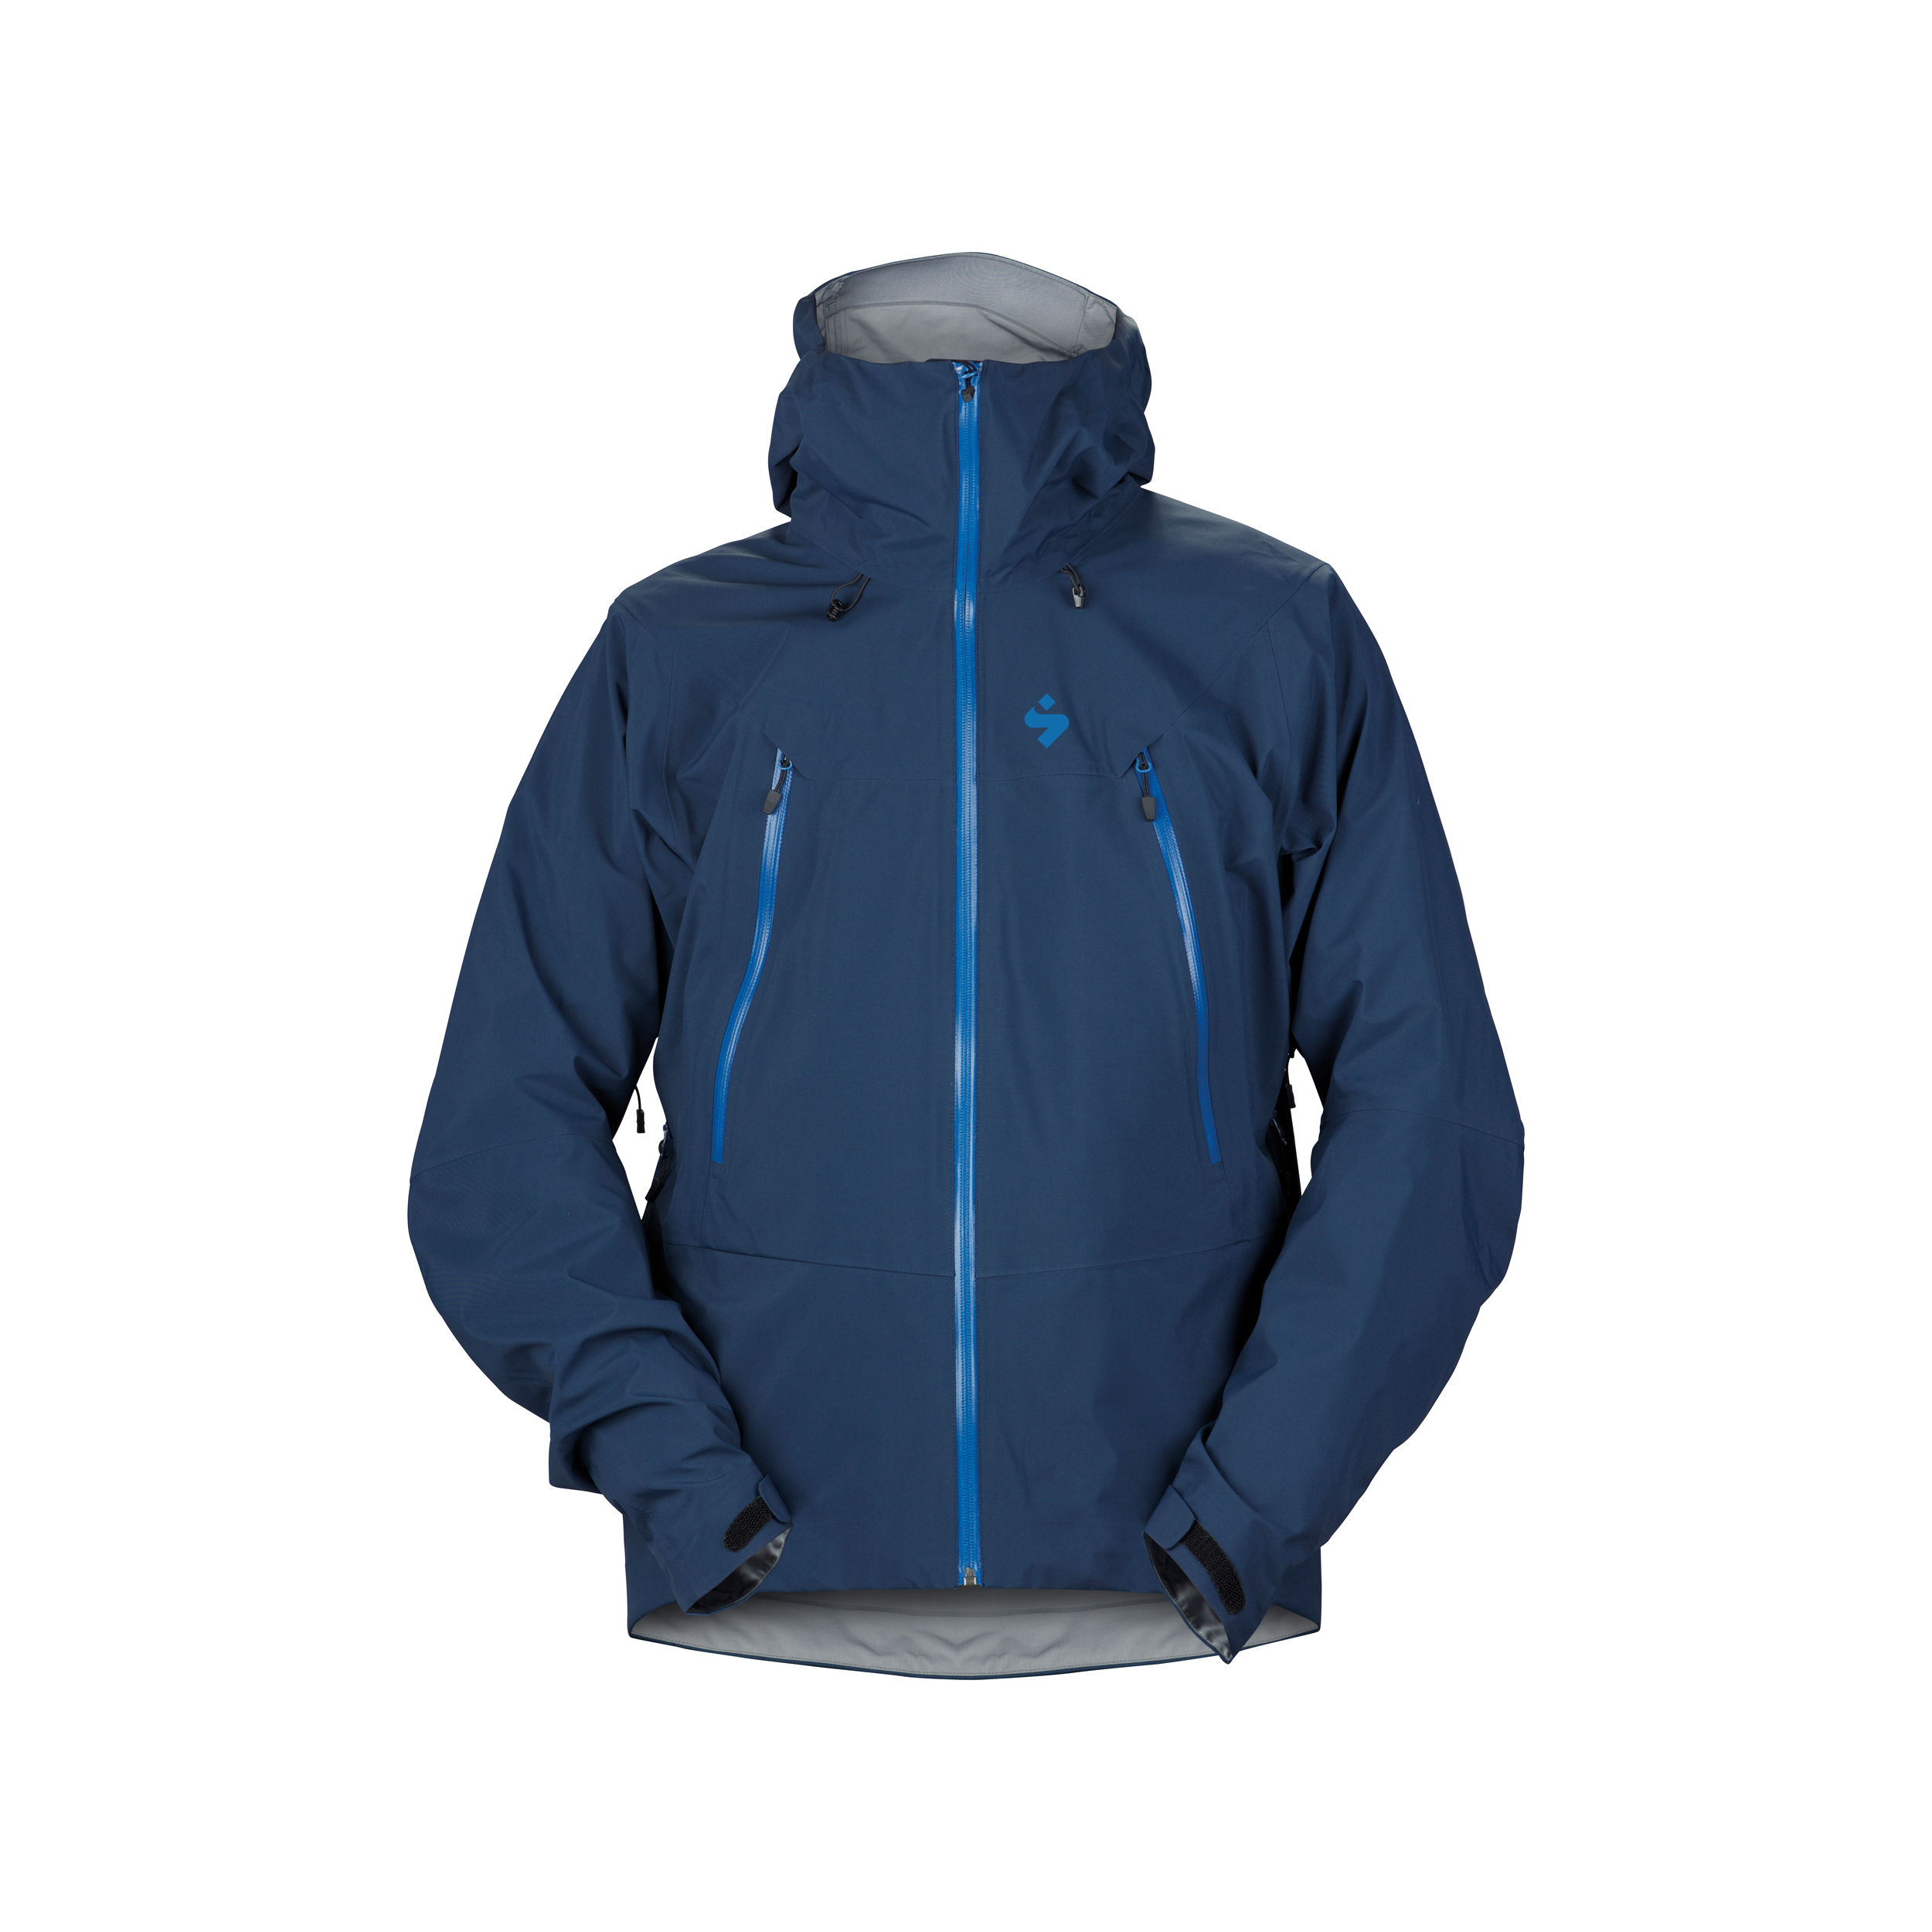 Salvation GORE-TEX Jacket Mens   Sweet Protection